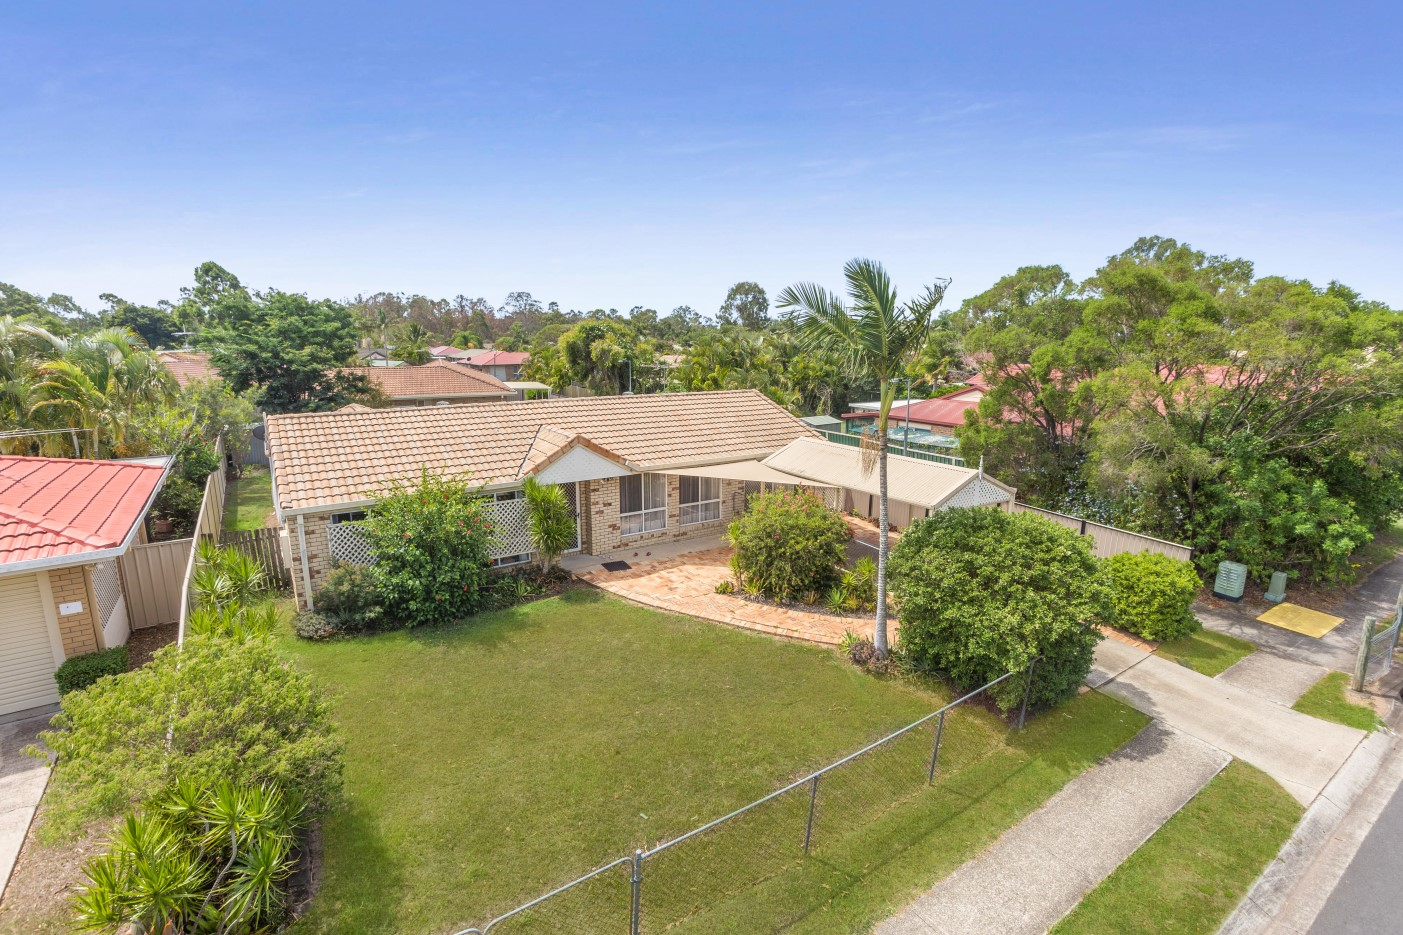 38 Torrens Street, Waterford West QLD 4133 - SOLD $320,000